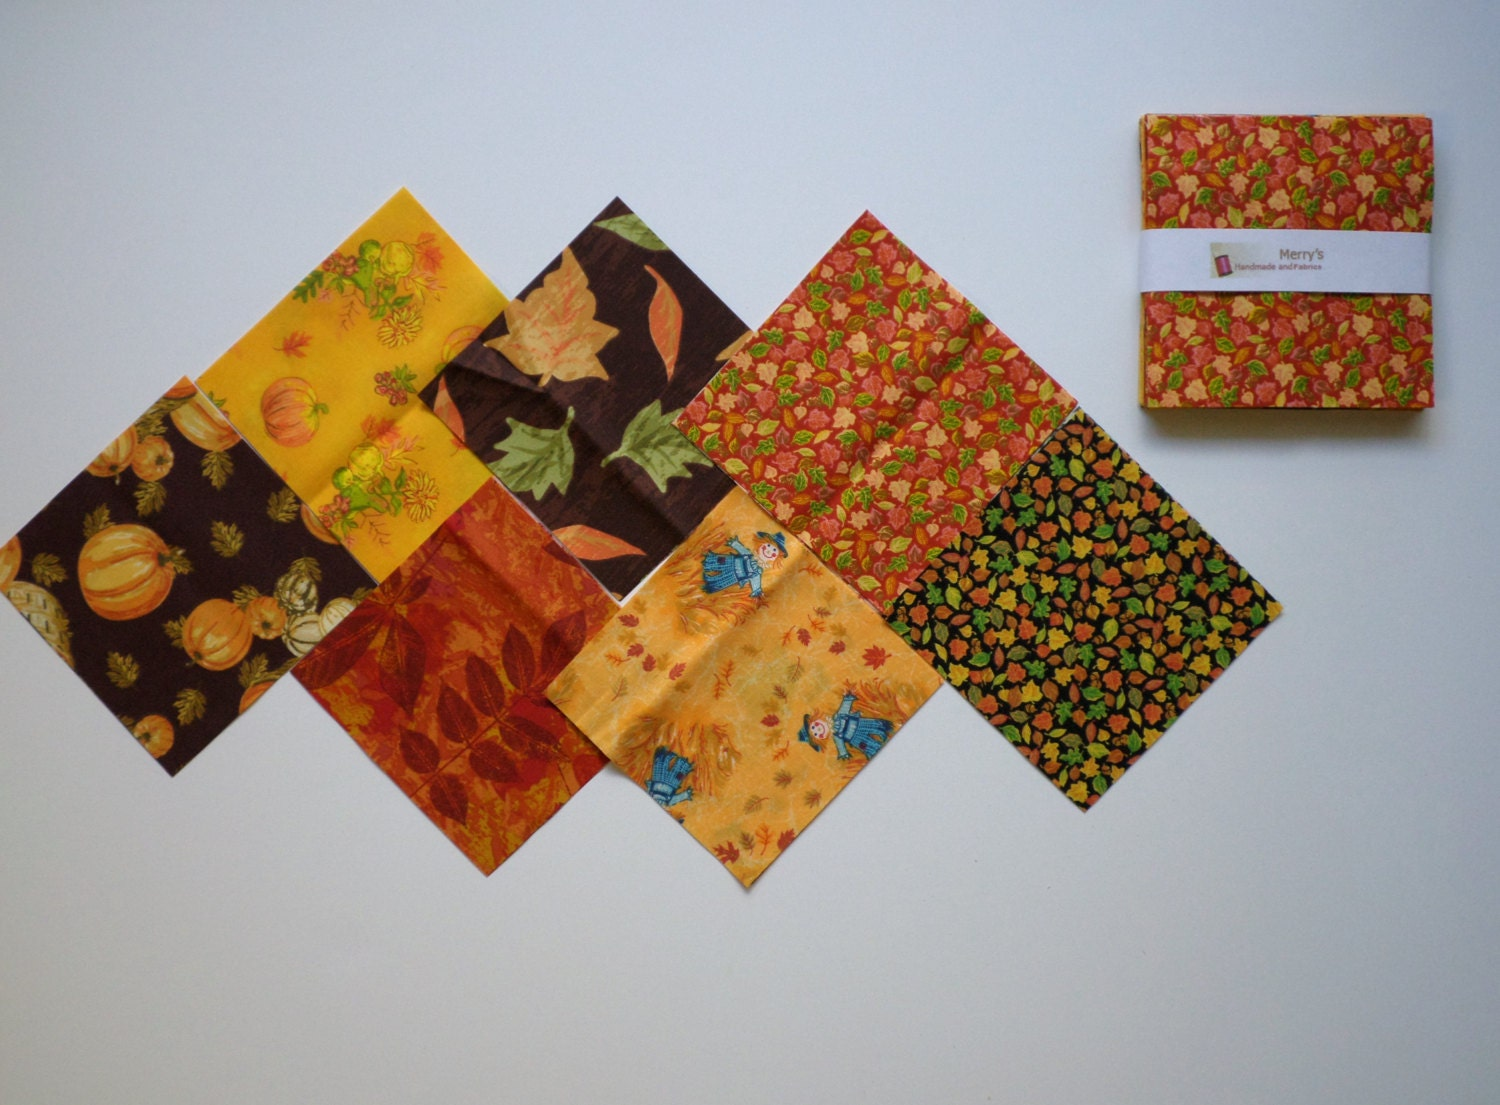 Harvest fall patterns charm pack quilt by merrysewingnfabric